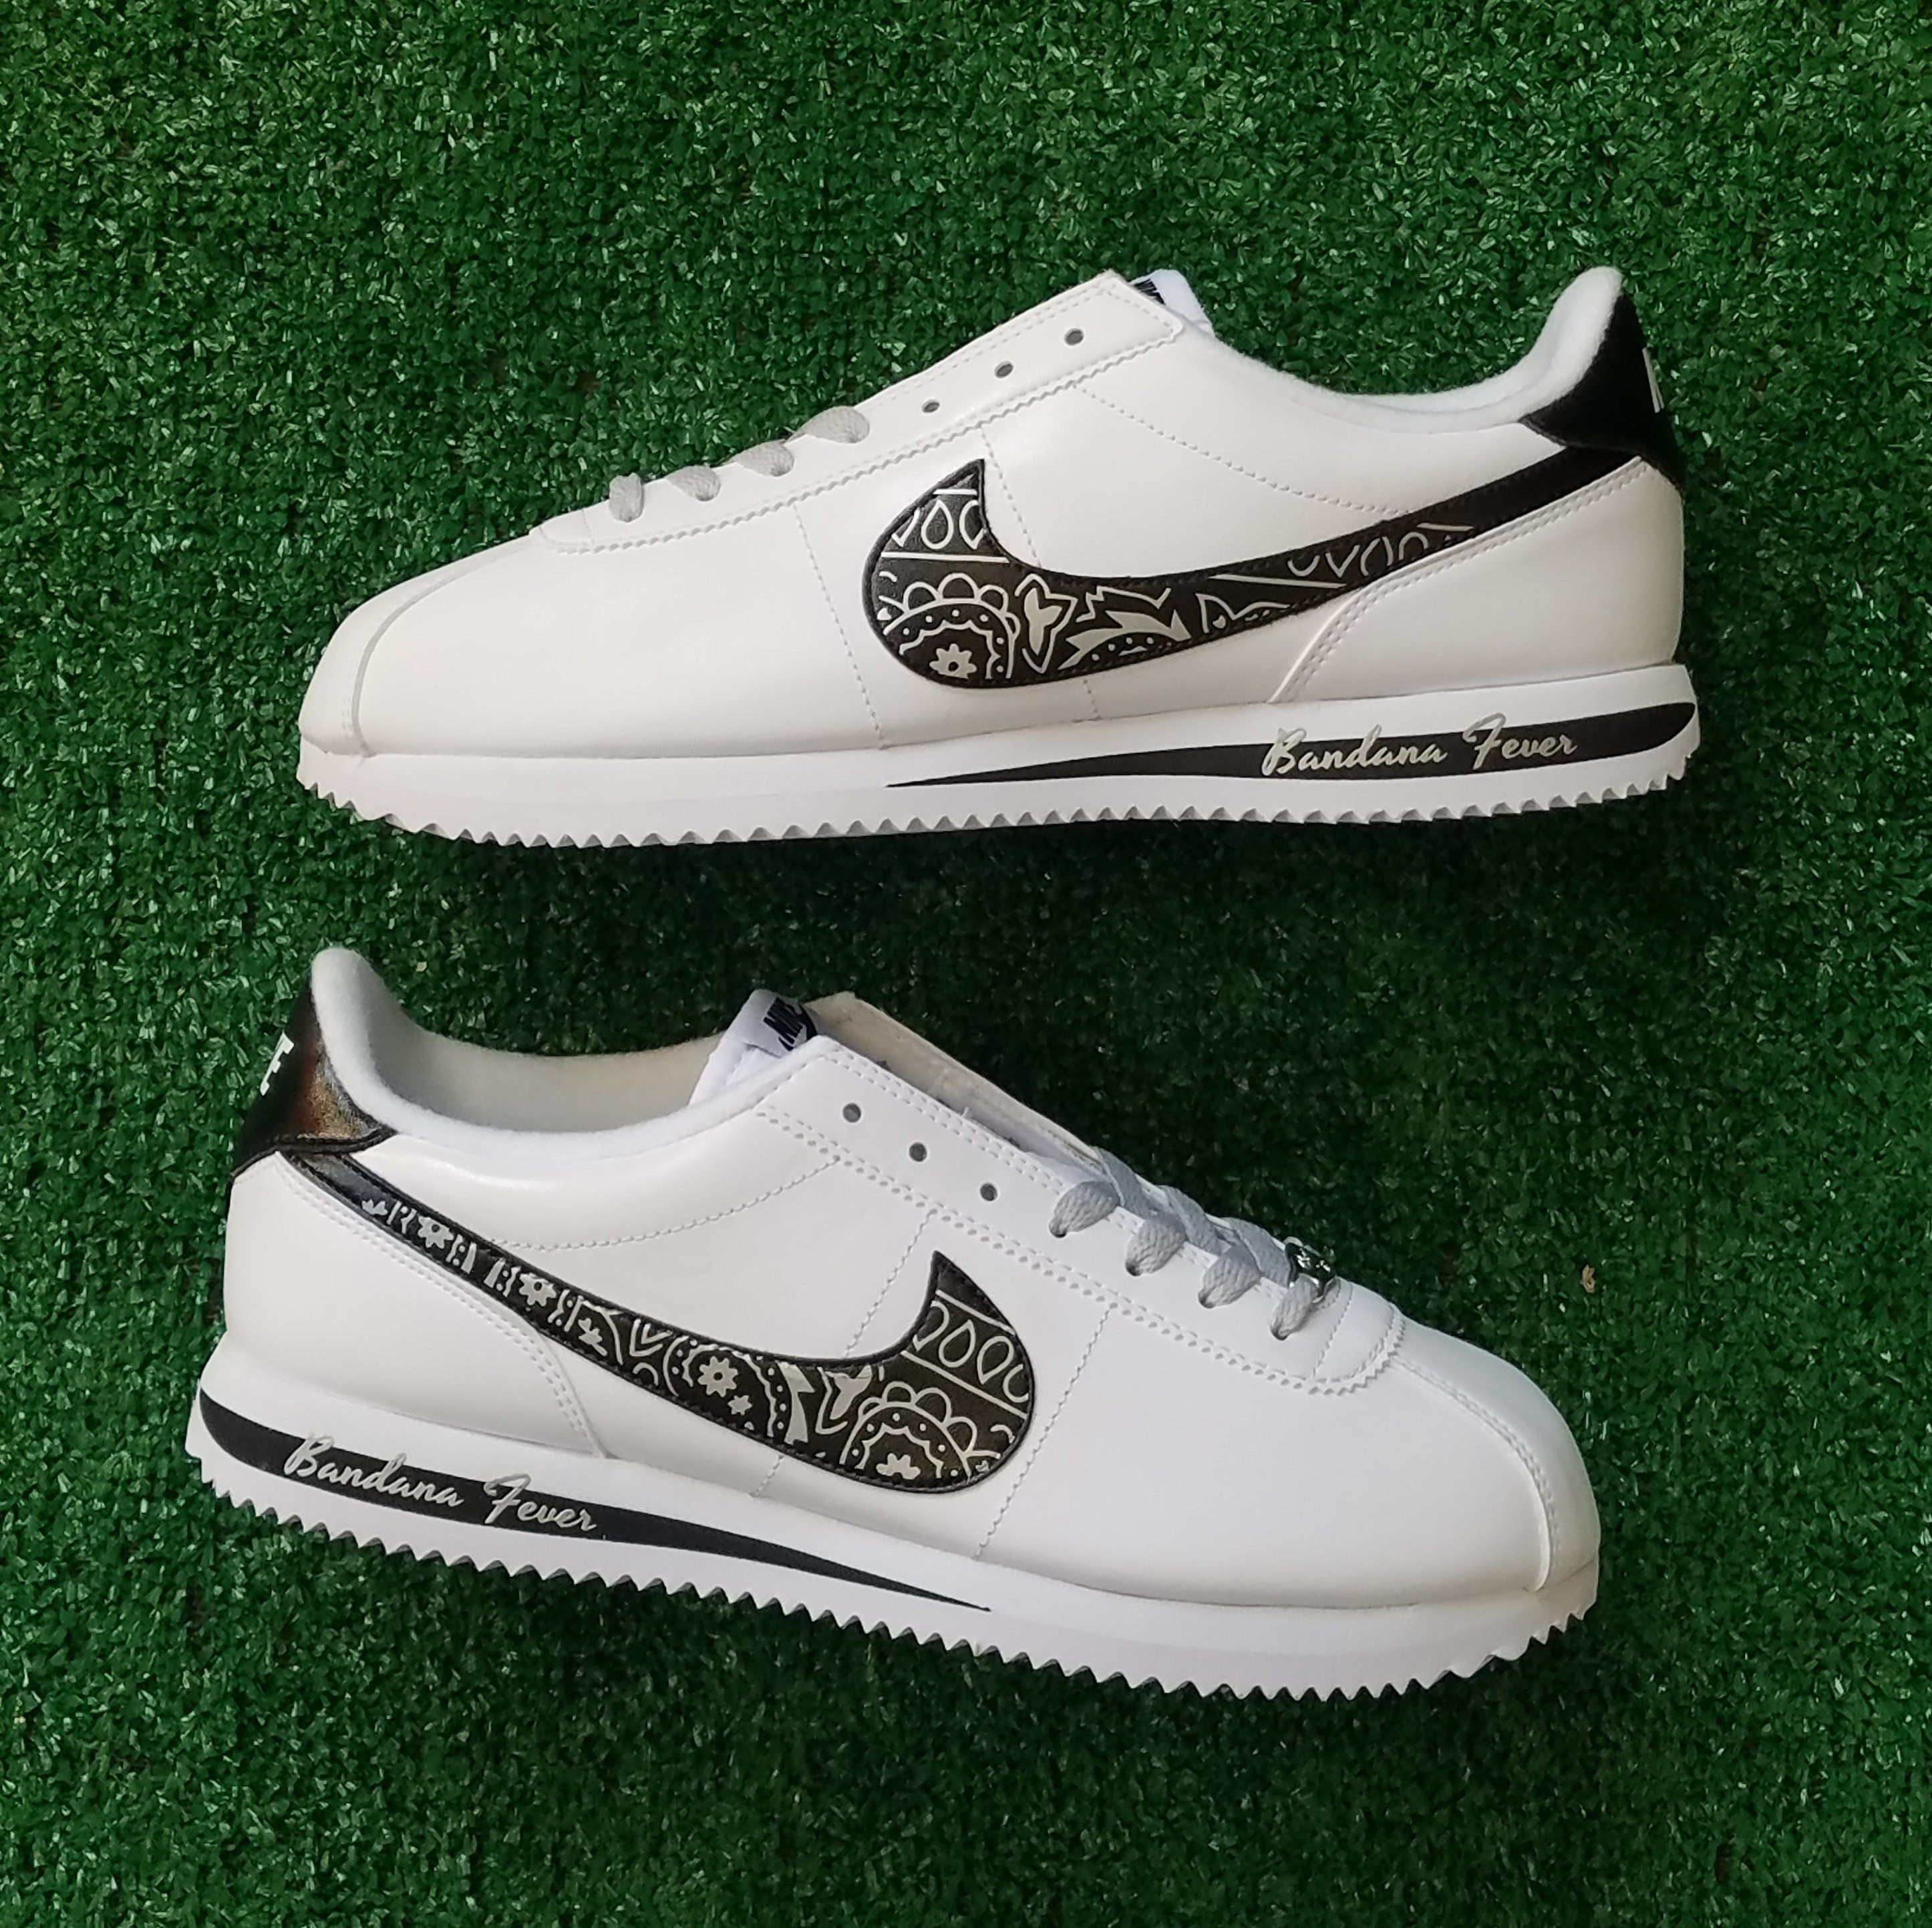 watch b4c2c ca739 Customized Nike Sneakers, Men s, White Leather, Bandana Print Metallic  Silver